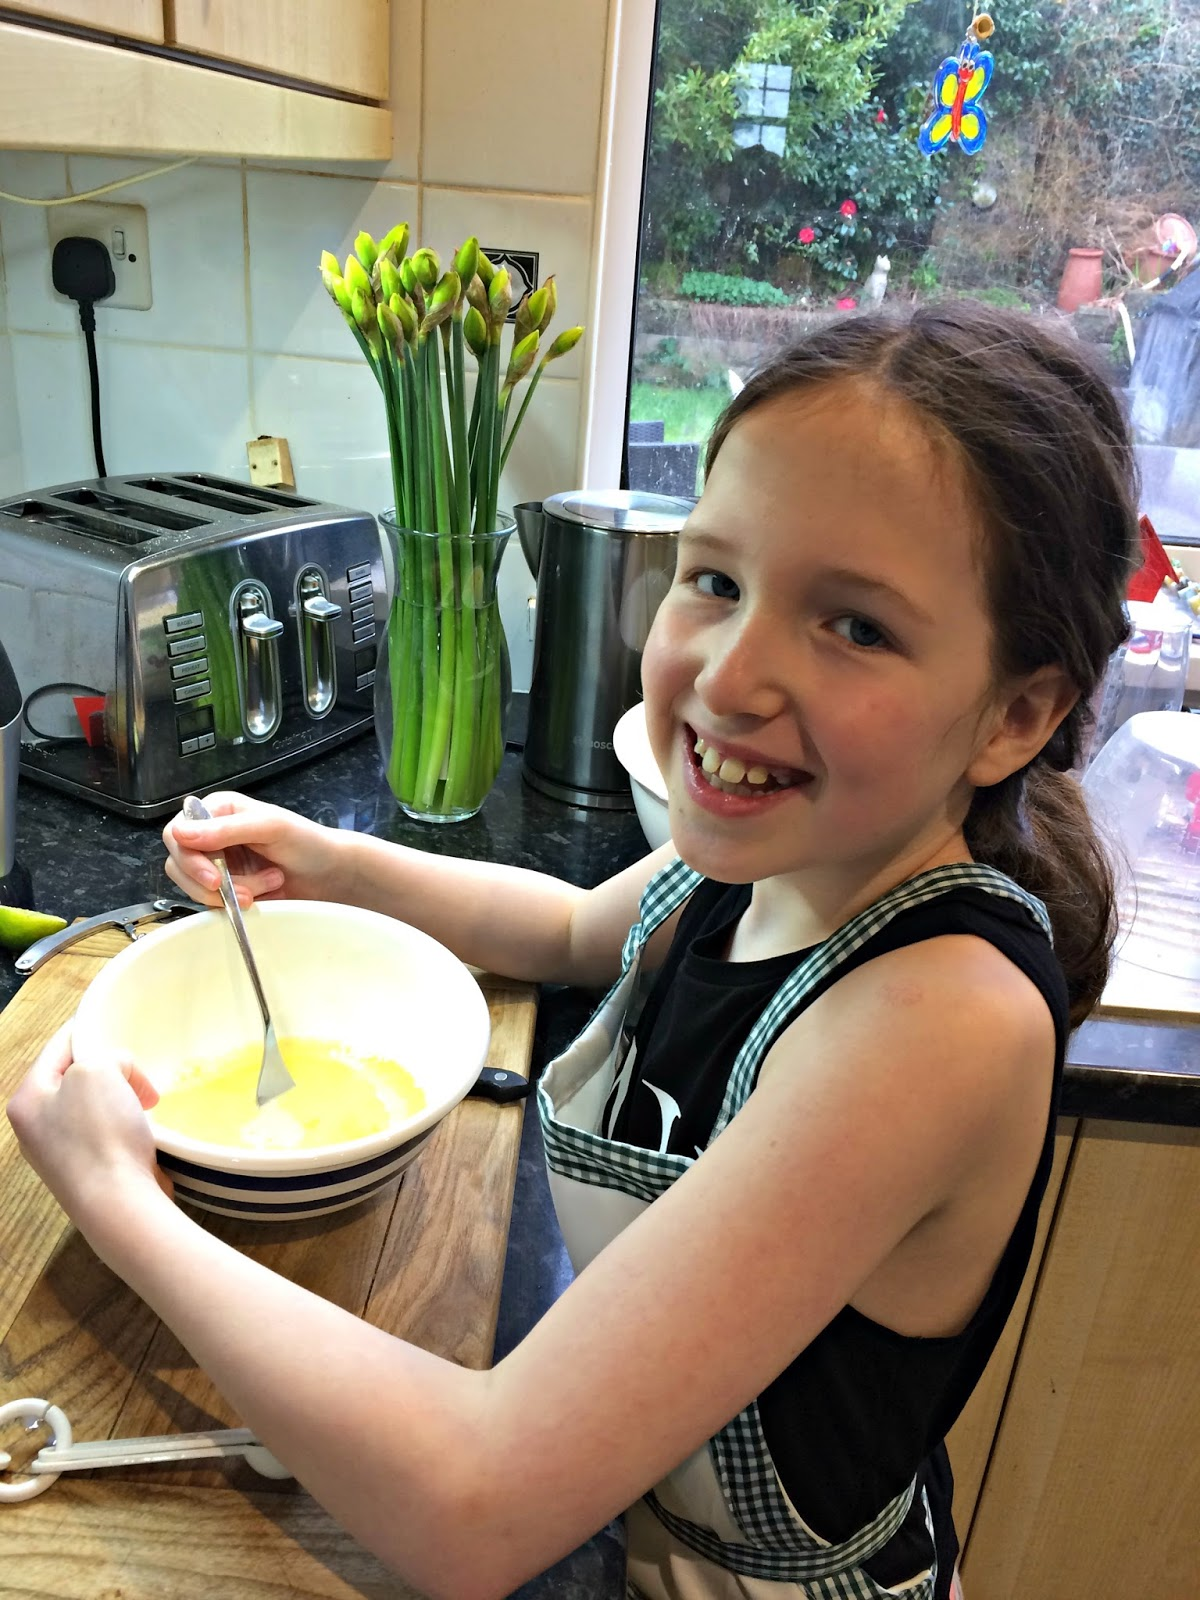 Caitlin Hobbis whisking eggs in a bowl at home in the kitchen